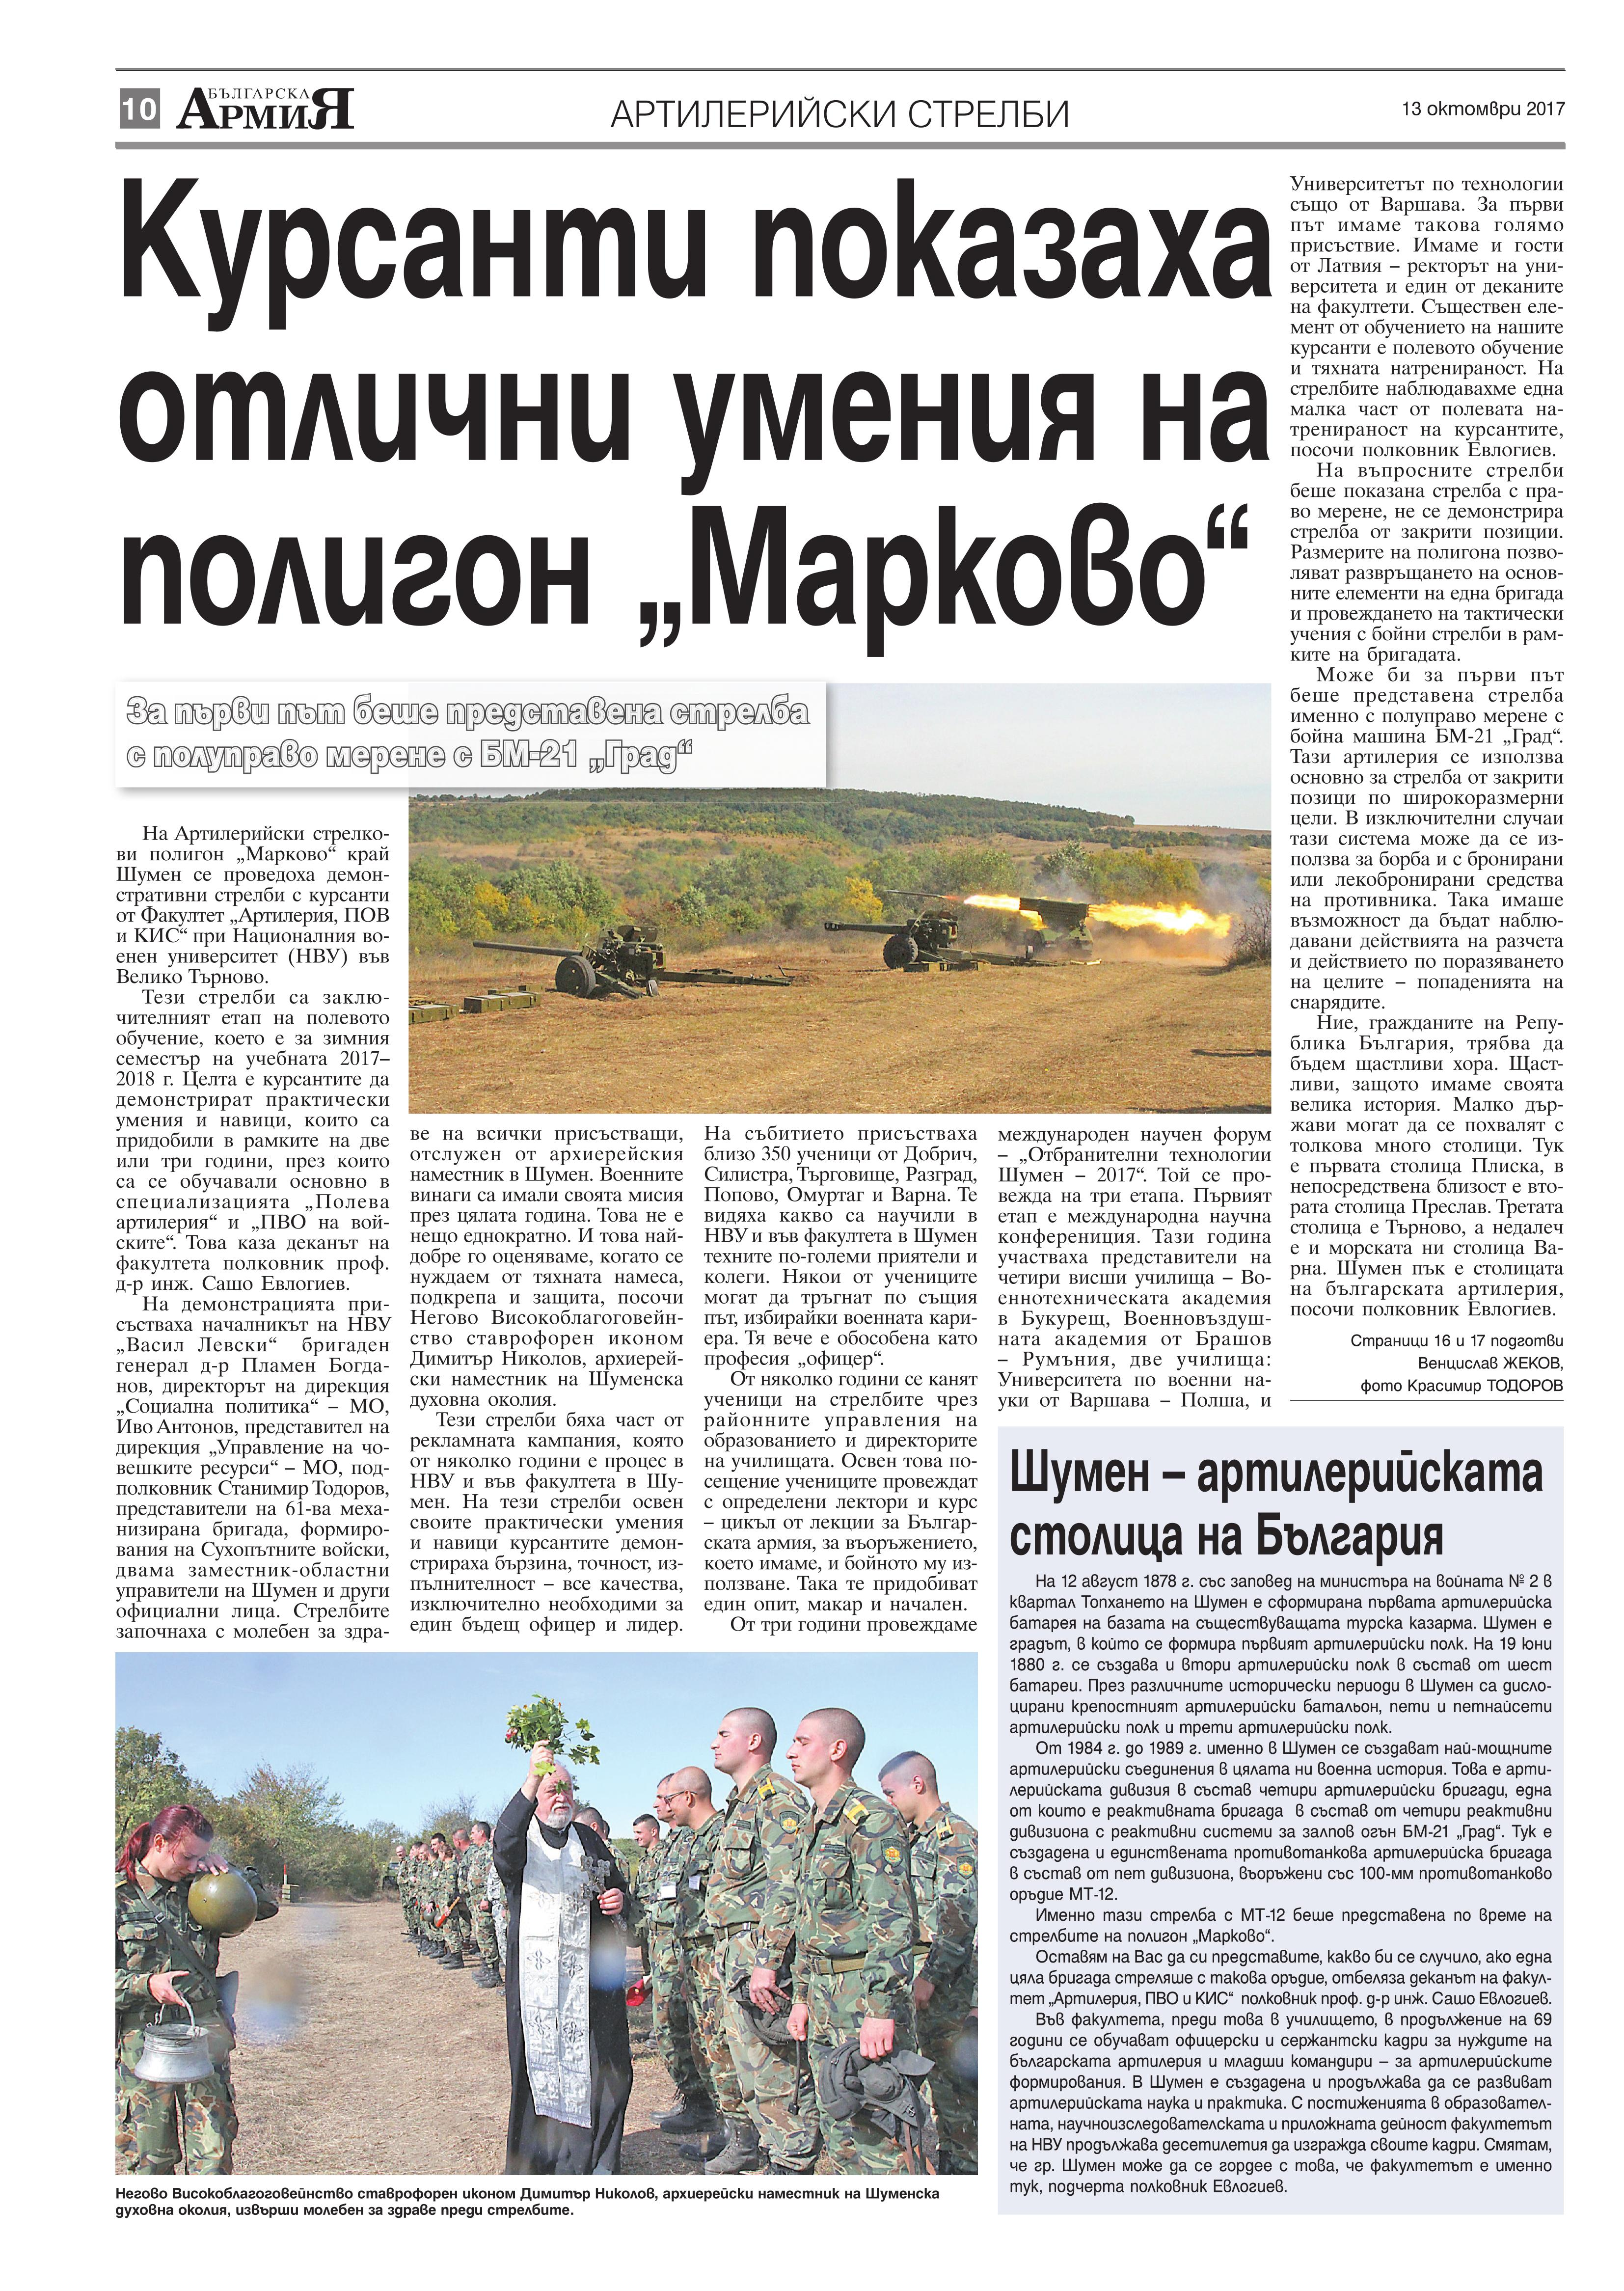 http://armymedia.bg/wp-content/uploads/2015/06/10.page1_-34.jpg